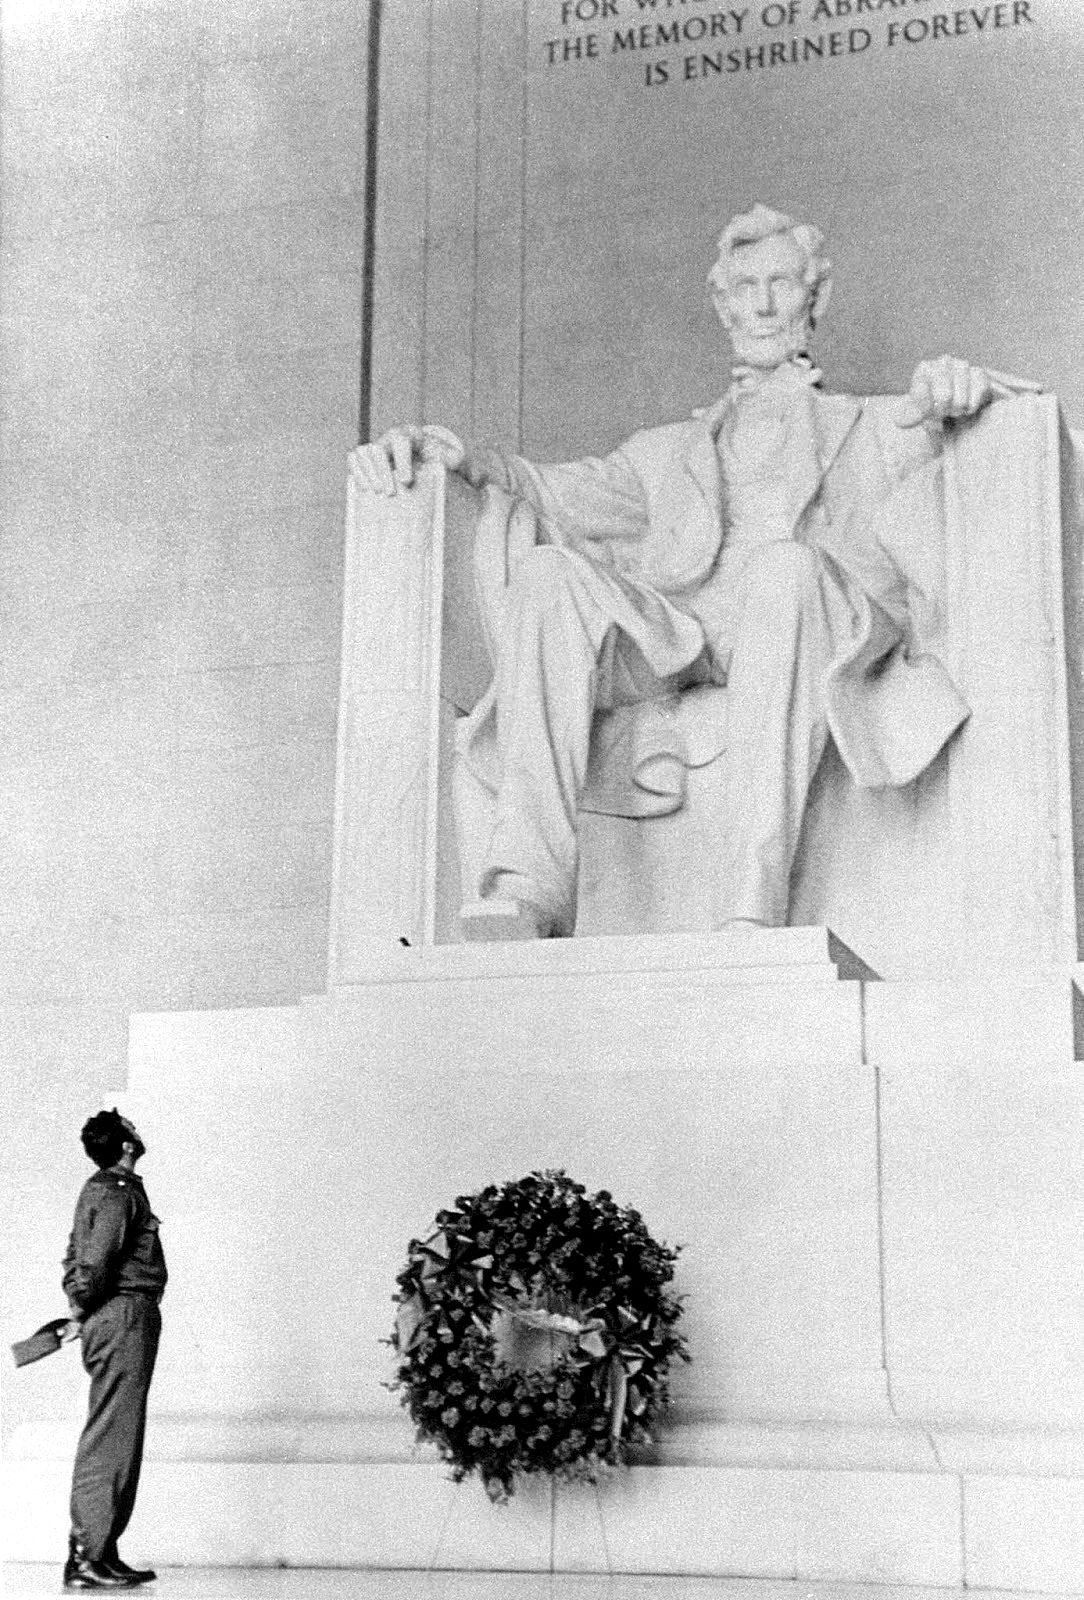 Castro visiting the Lincoln Memorial during his visit to the United States, 1959. #cubaisland